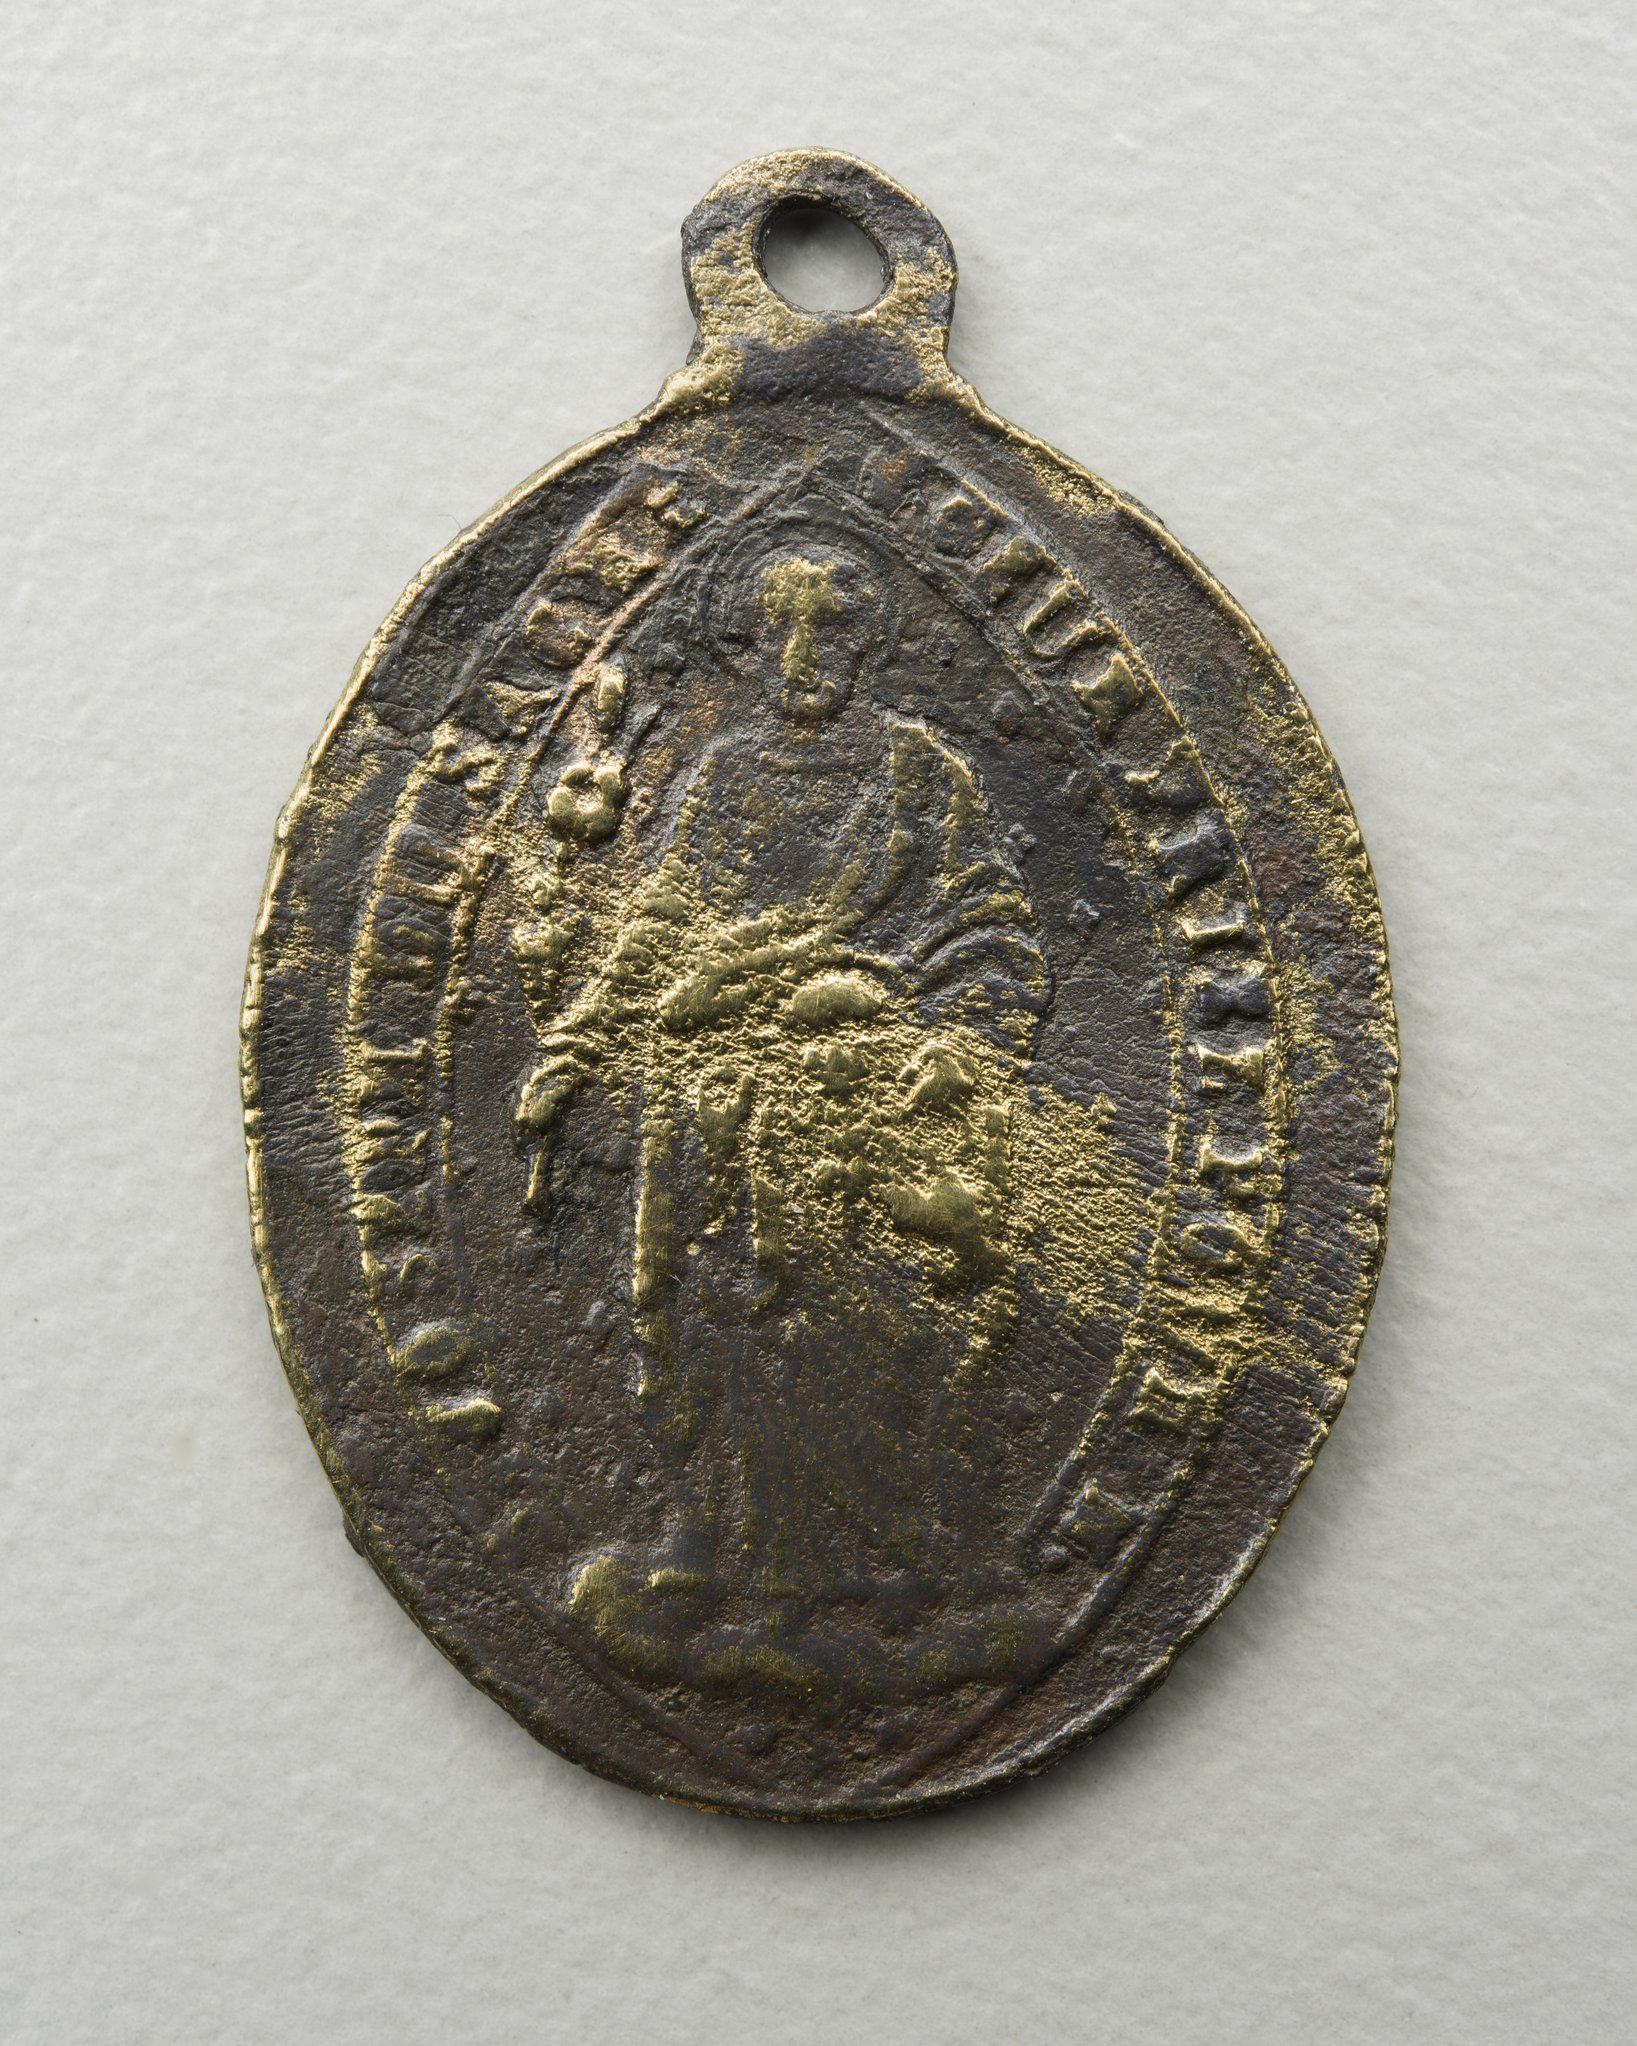 Side two reads Joseph du Sacre Couer Priez Pour N.? (Joseph of the Sacred Heart pray for us). The medal is dated between 1847 and 1872. It was donated to the Kansas Historical Society in 1994.